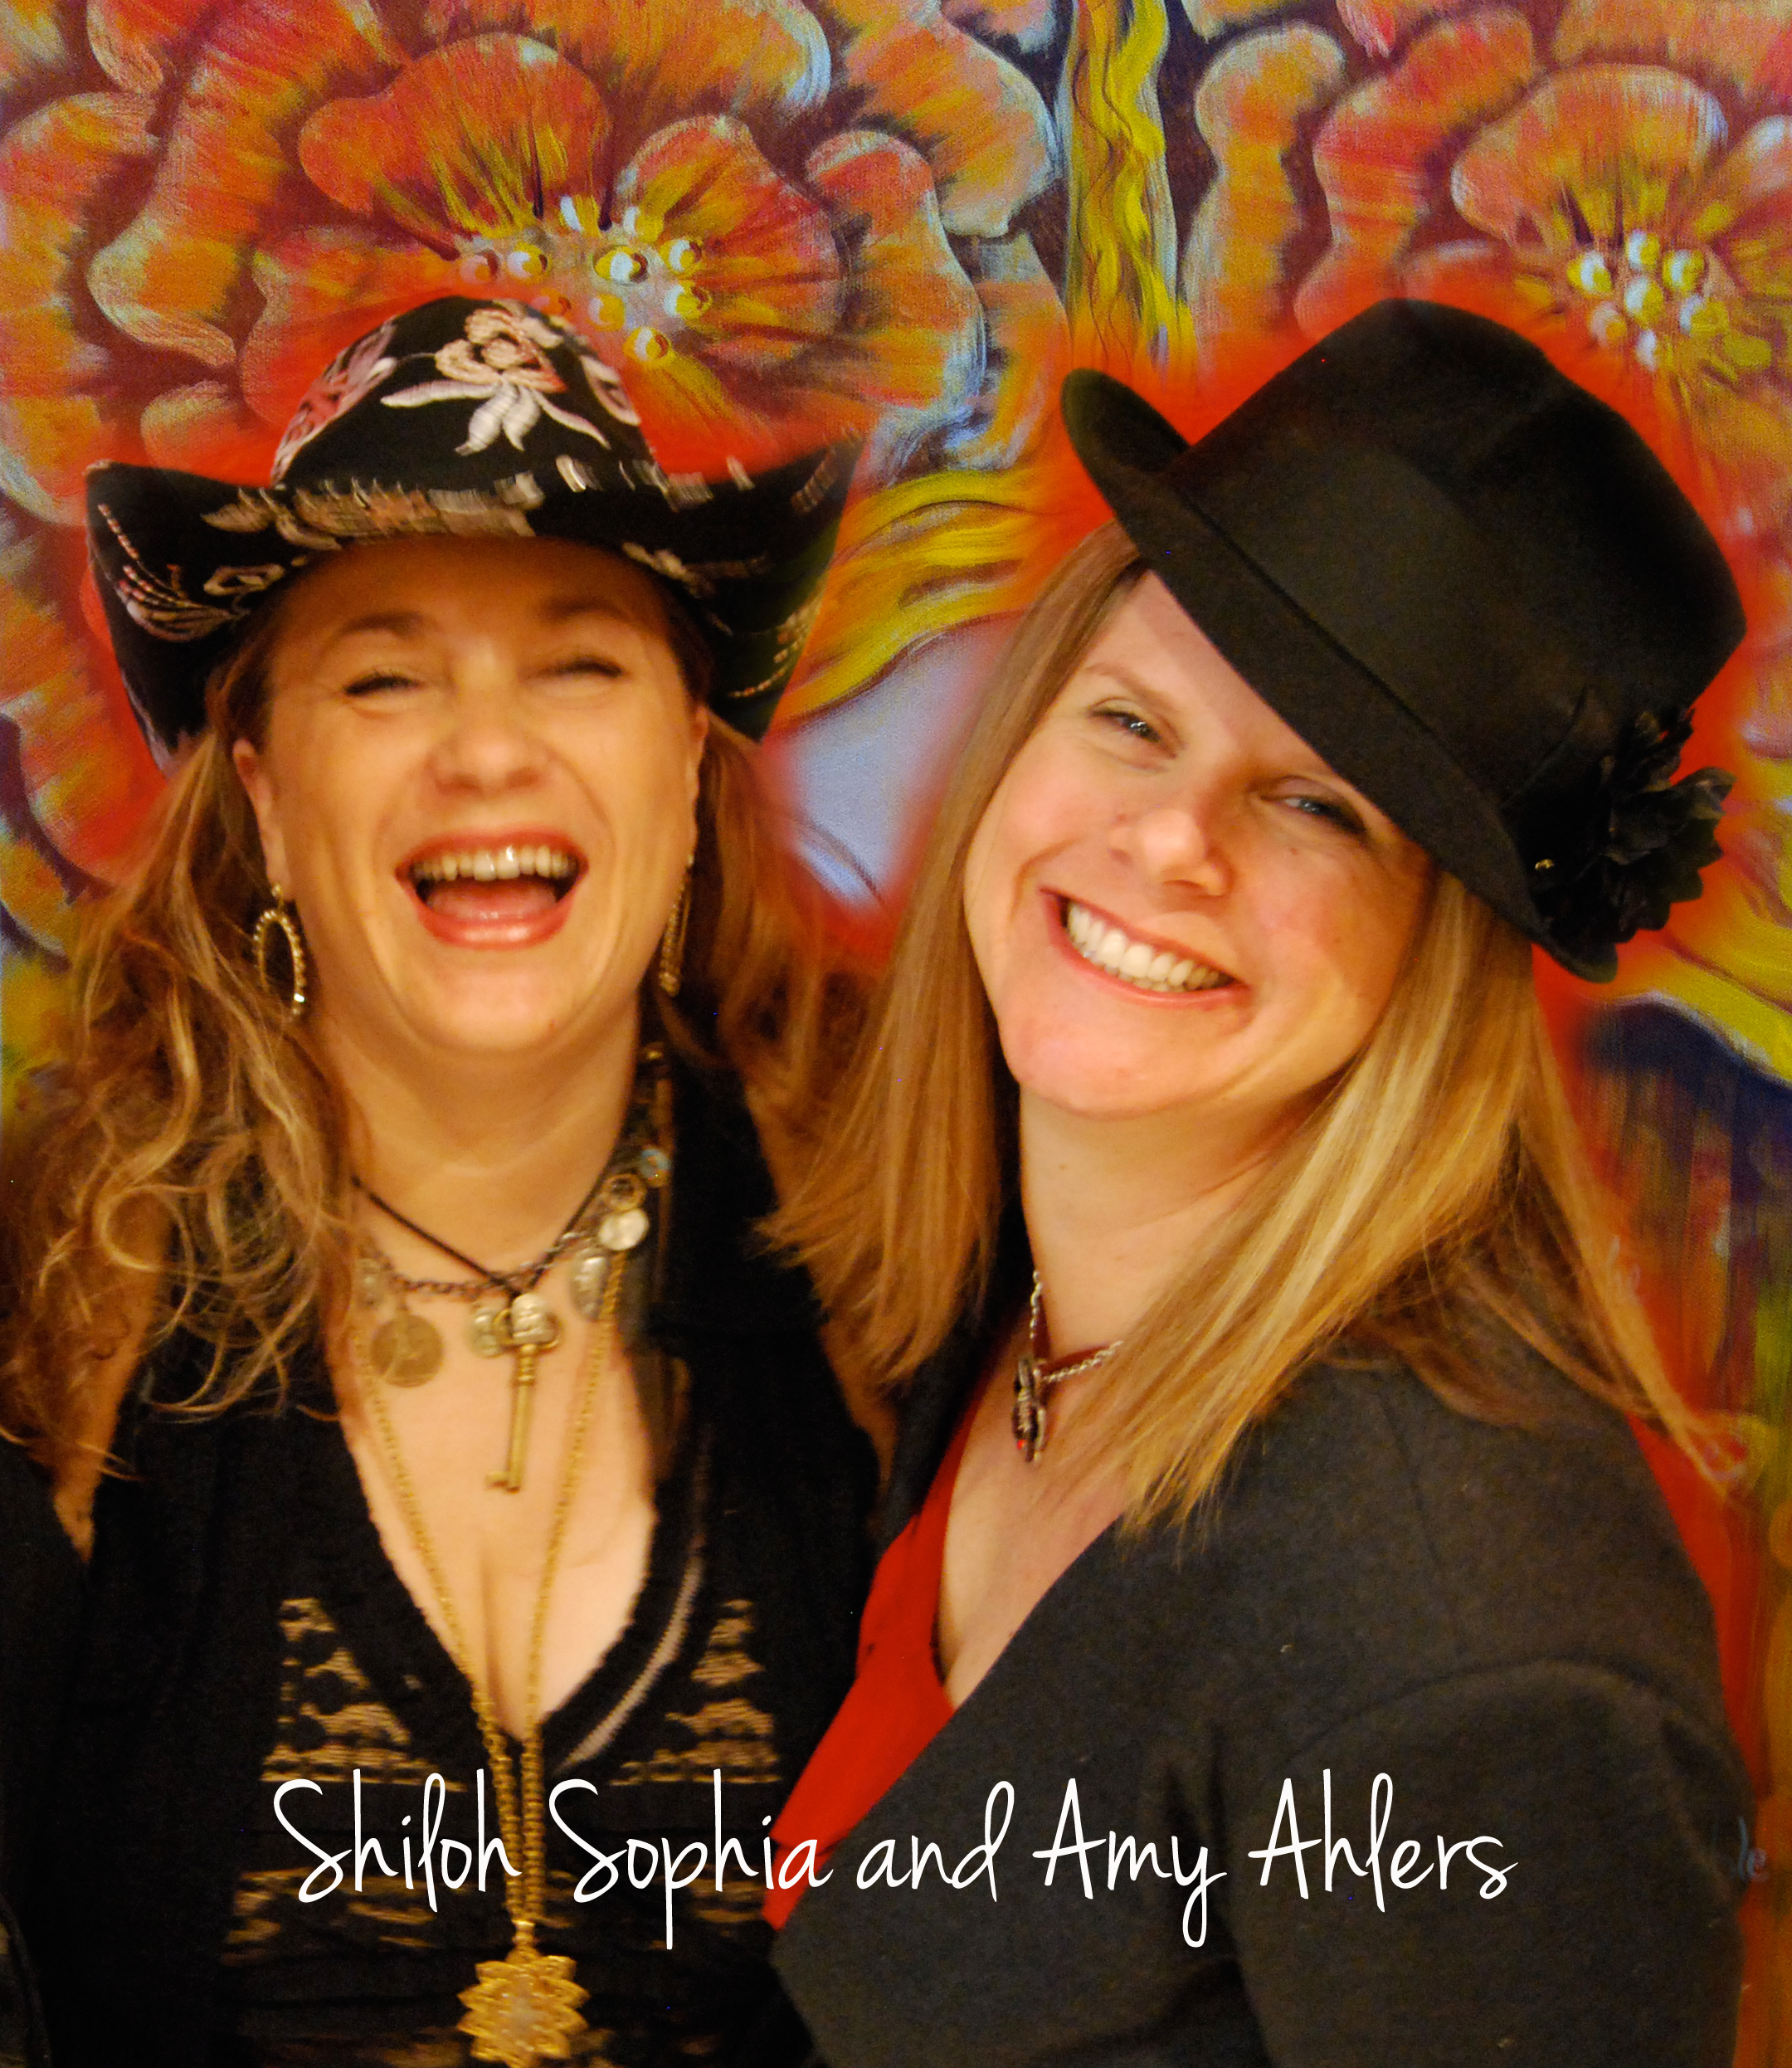 Shiloh Sophia and Amy Ahlers